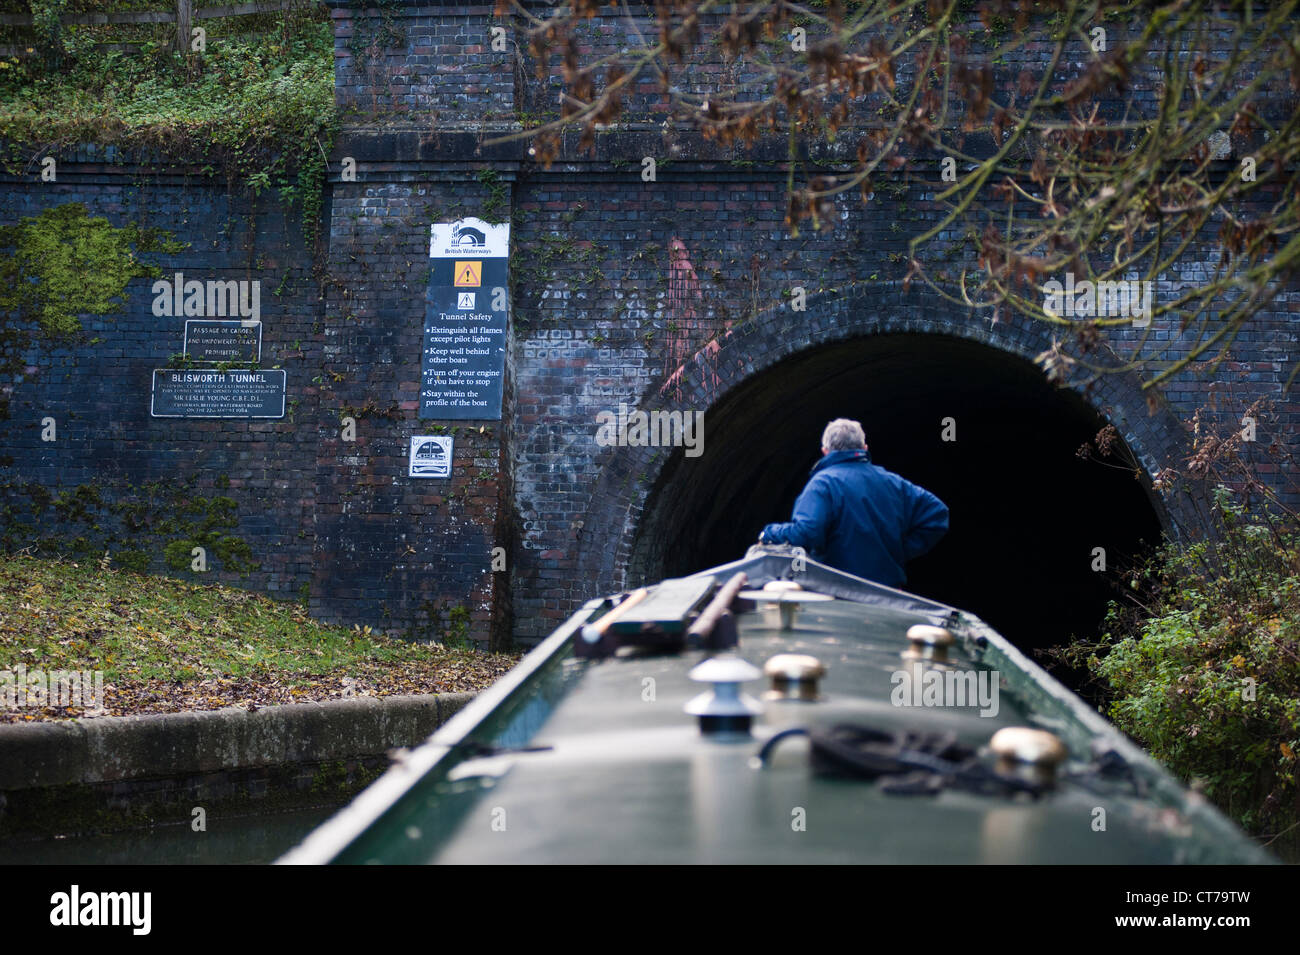 entrance to blisworth tunnel on grand union canal, - Stock Image